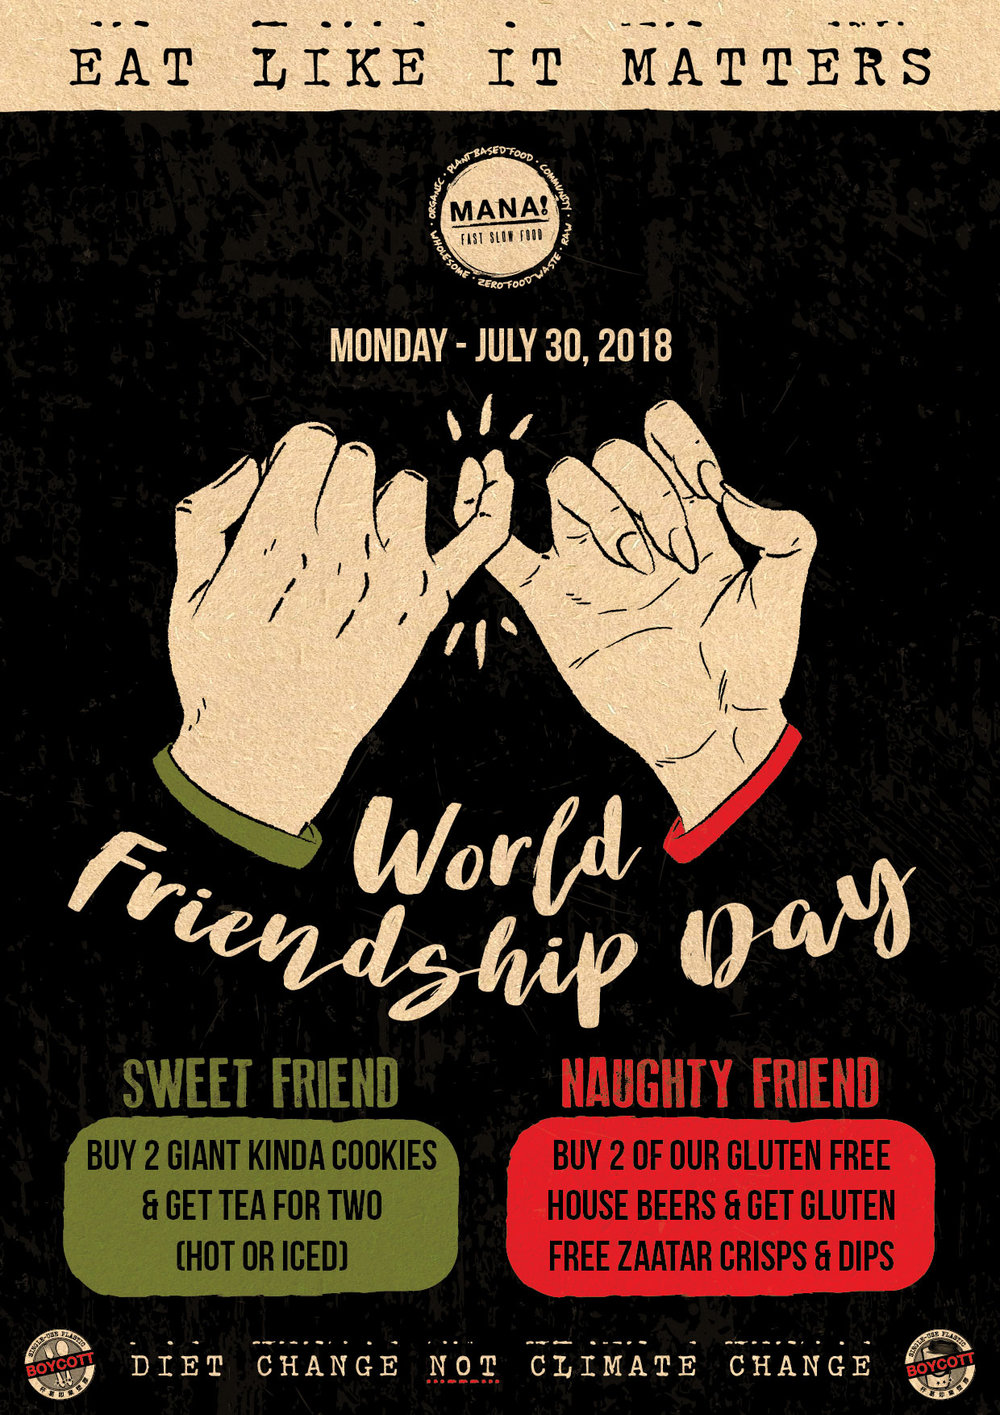 MANA! Community Days (World Friendship Day) - Poster 01B-01.jpg